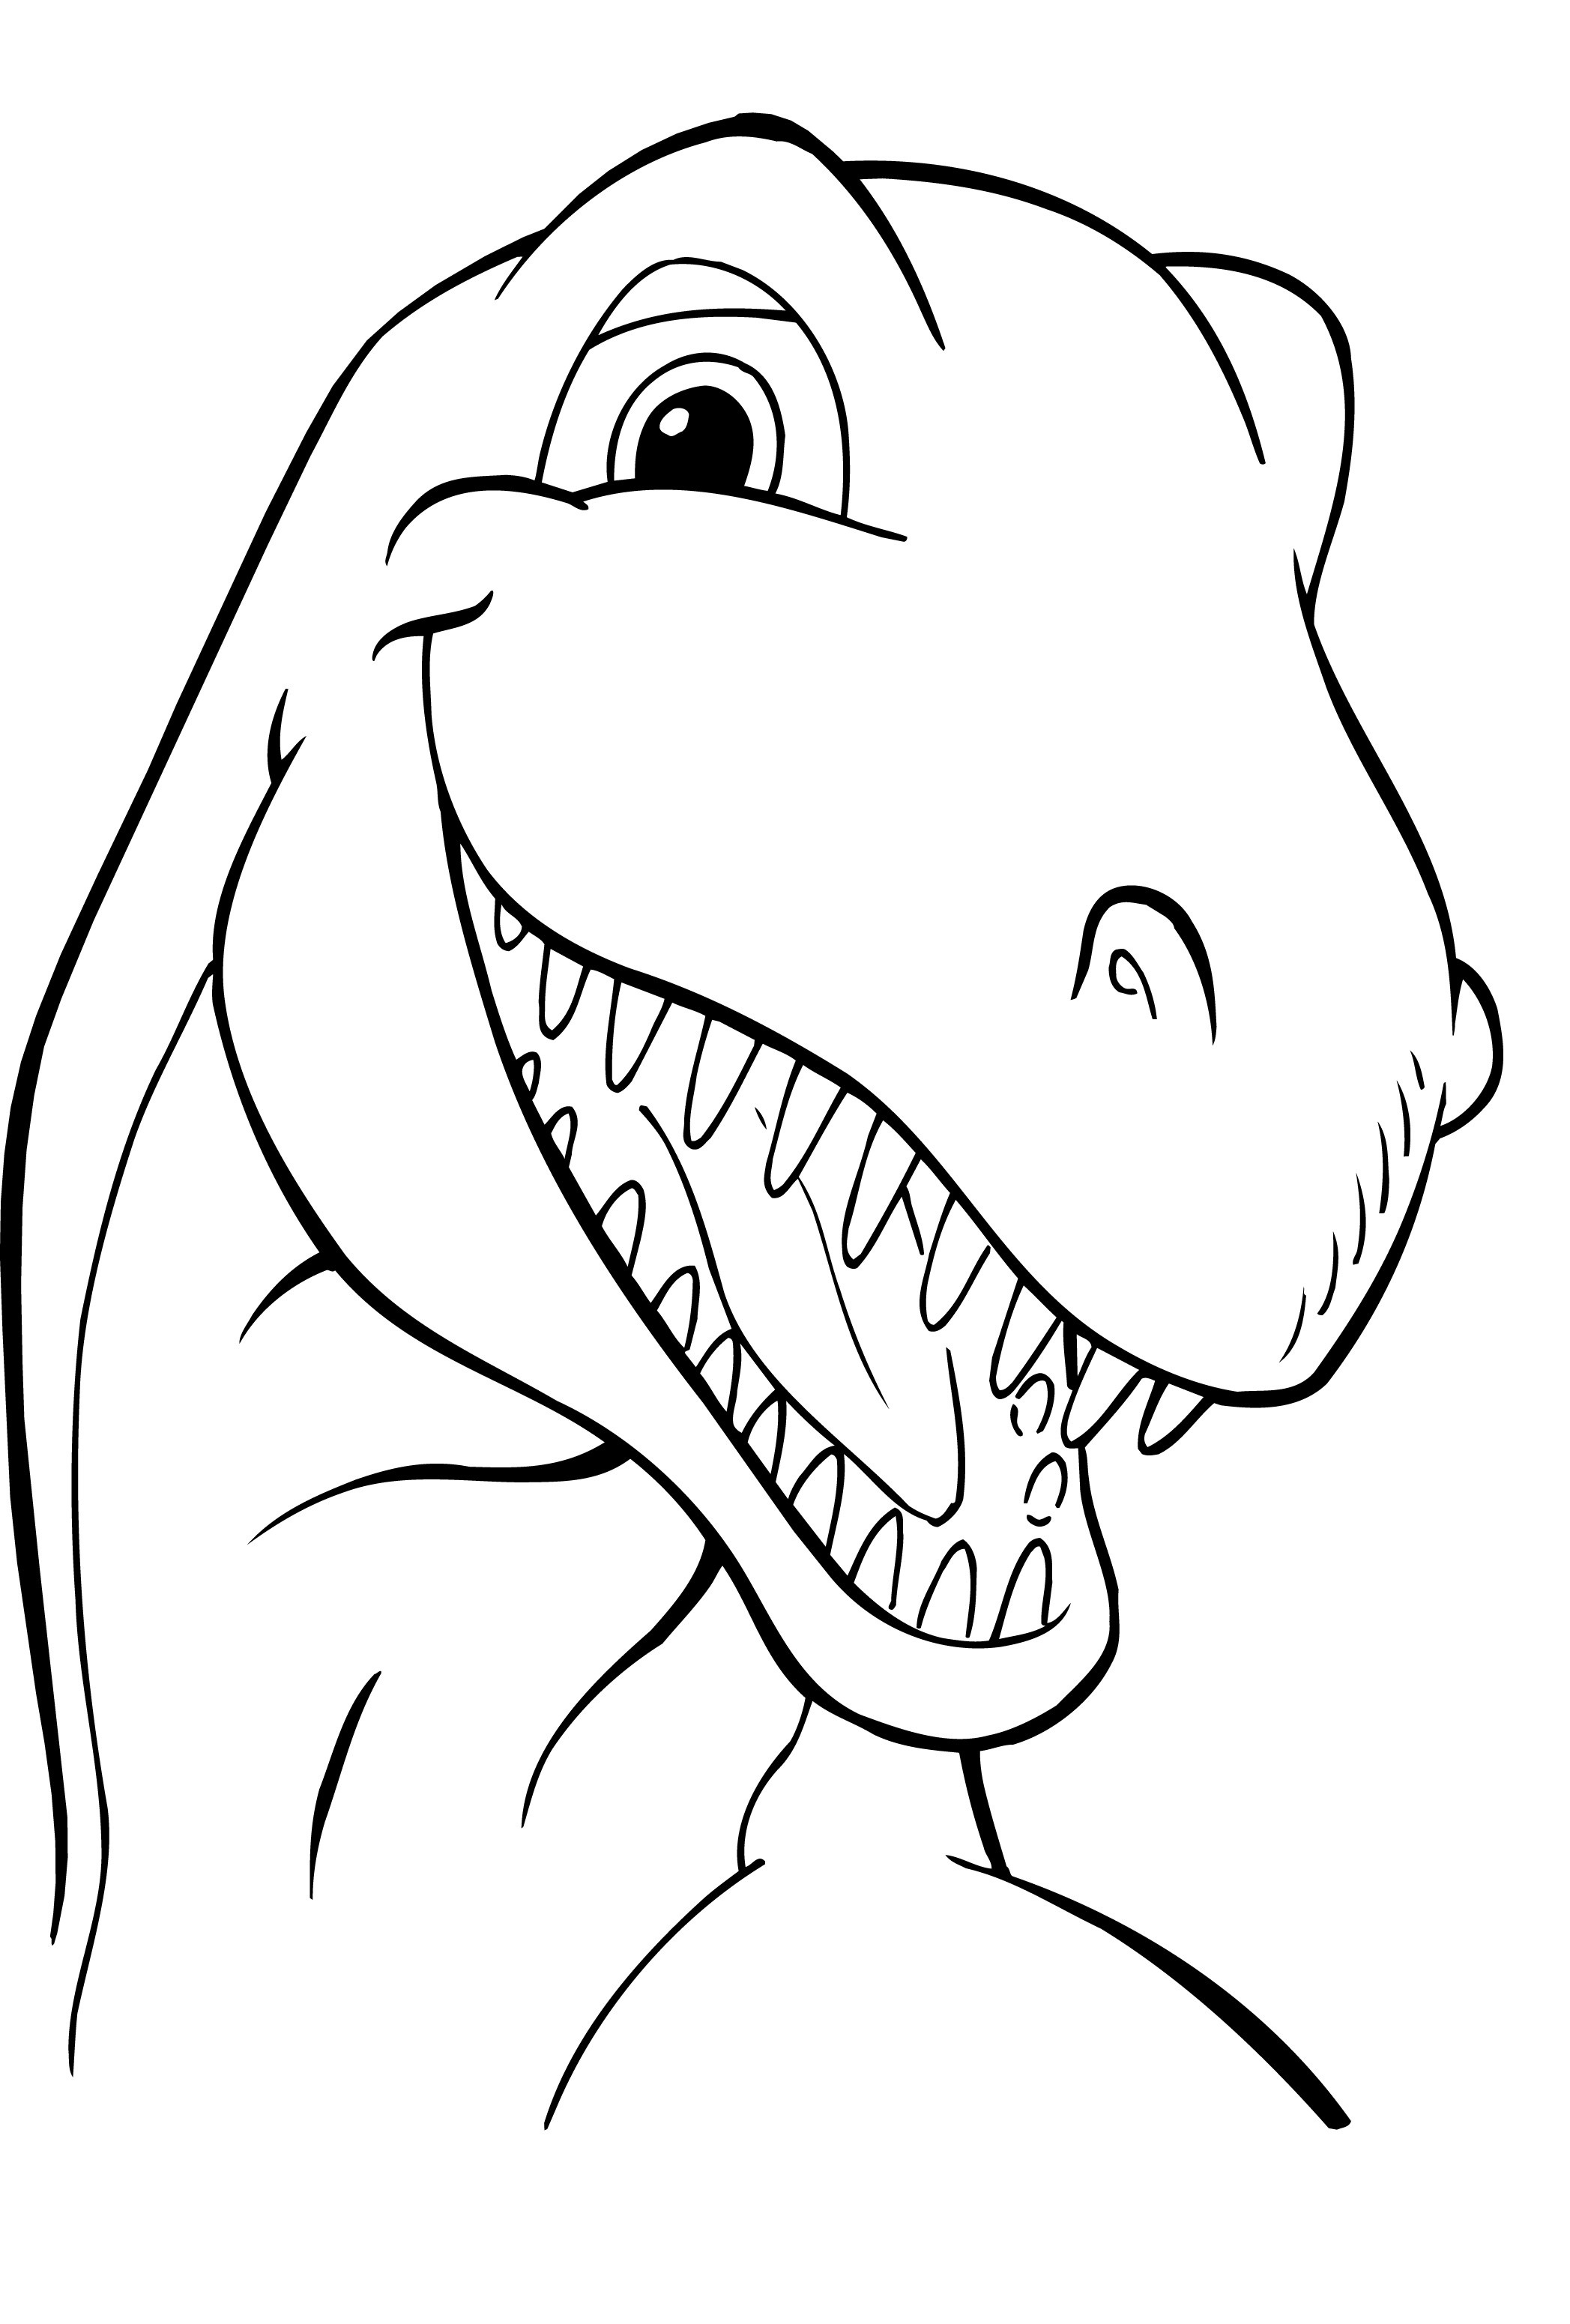 Free Printable Dinosaur Coloring Pages For Kids Free Printable Coloring Pages Printable